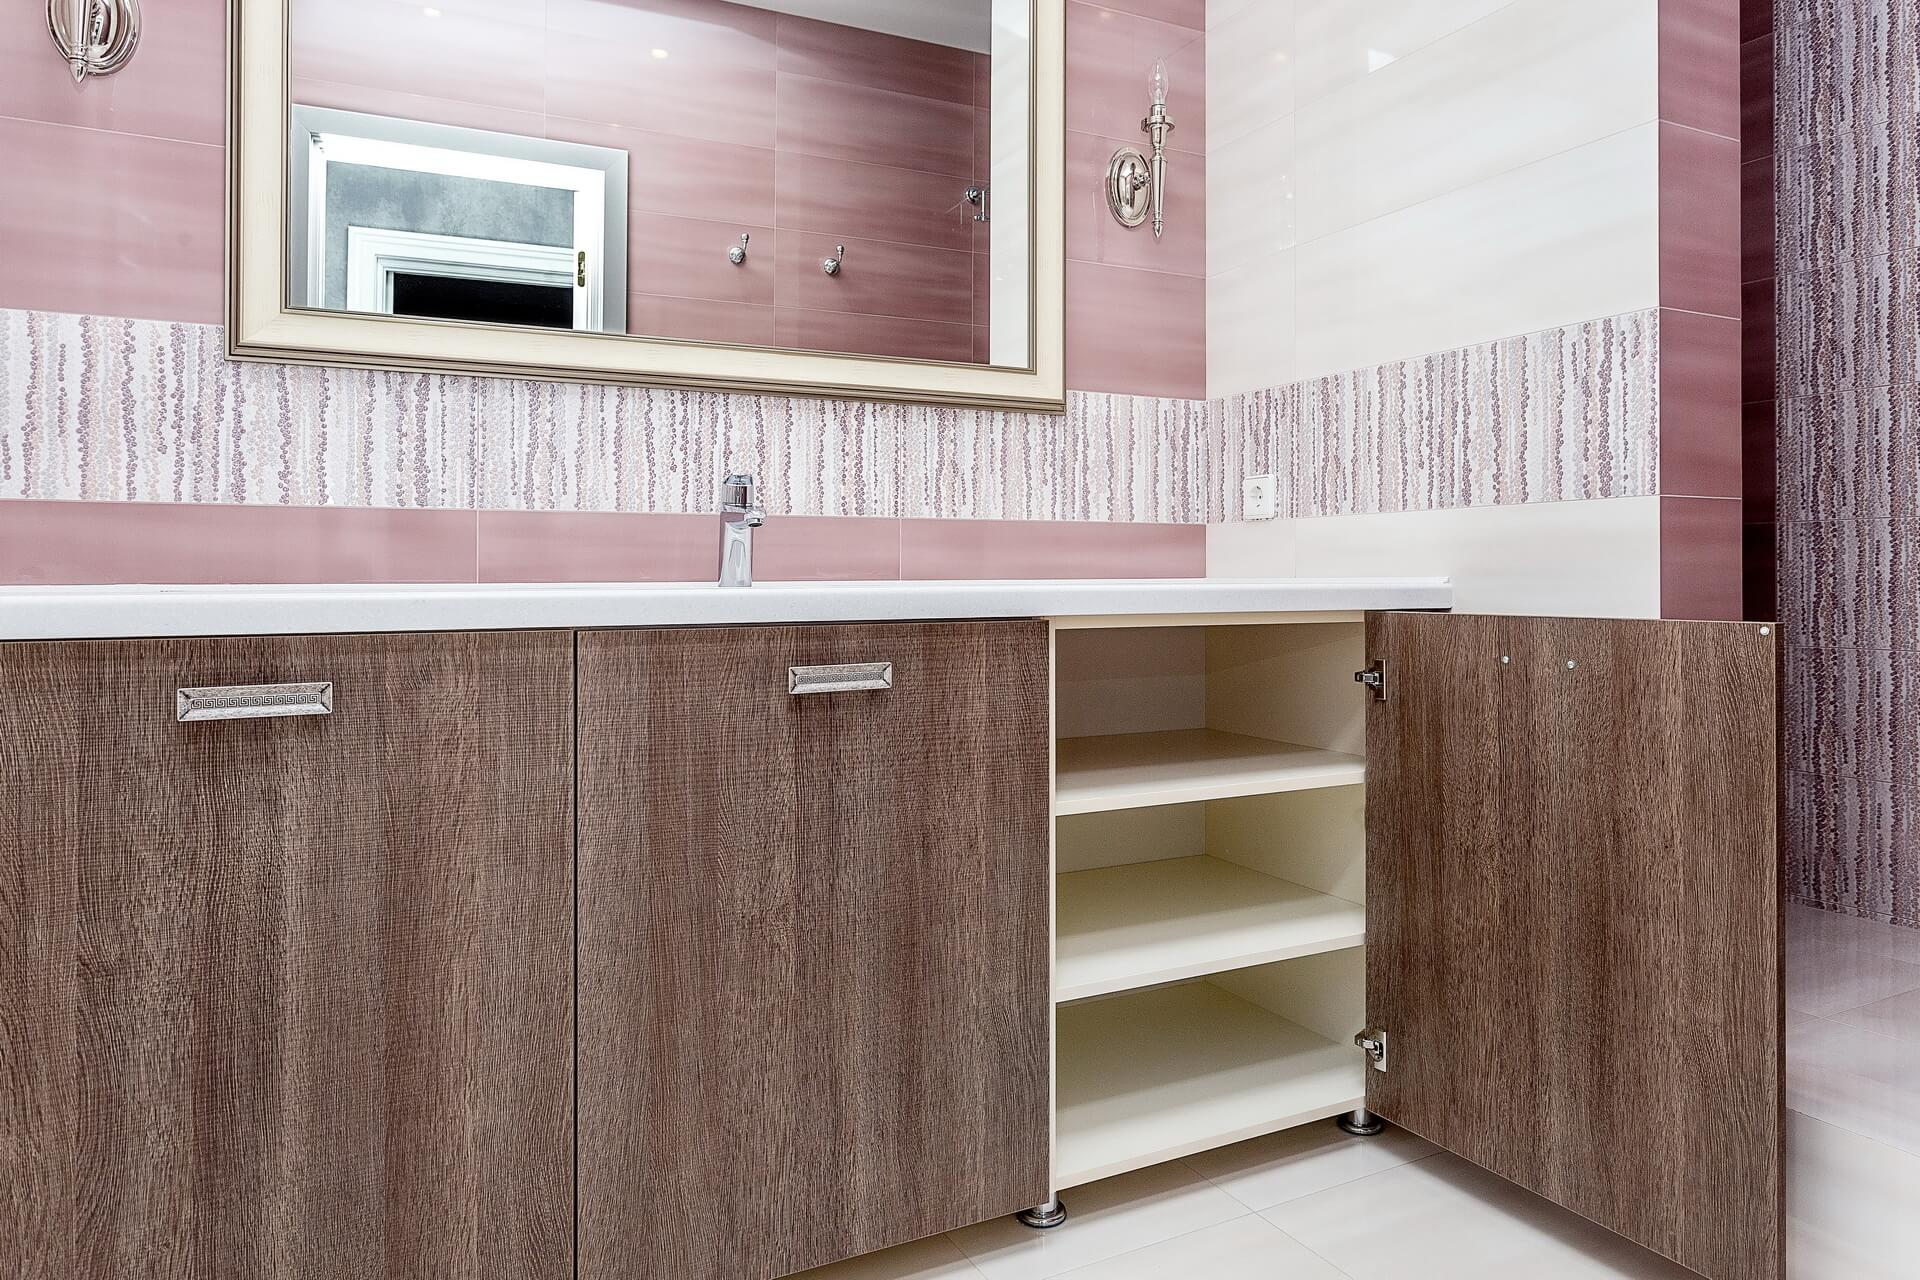 Senso Design Custom Washroom Cabinets